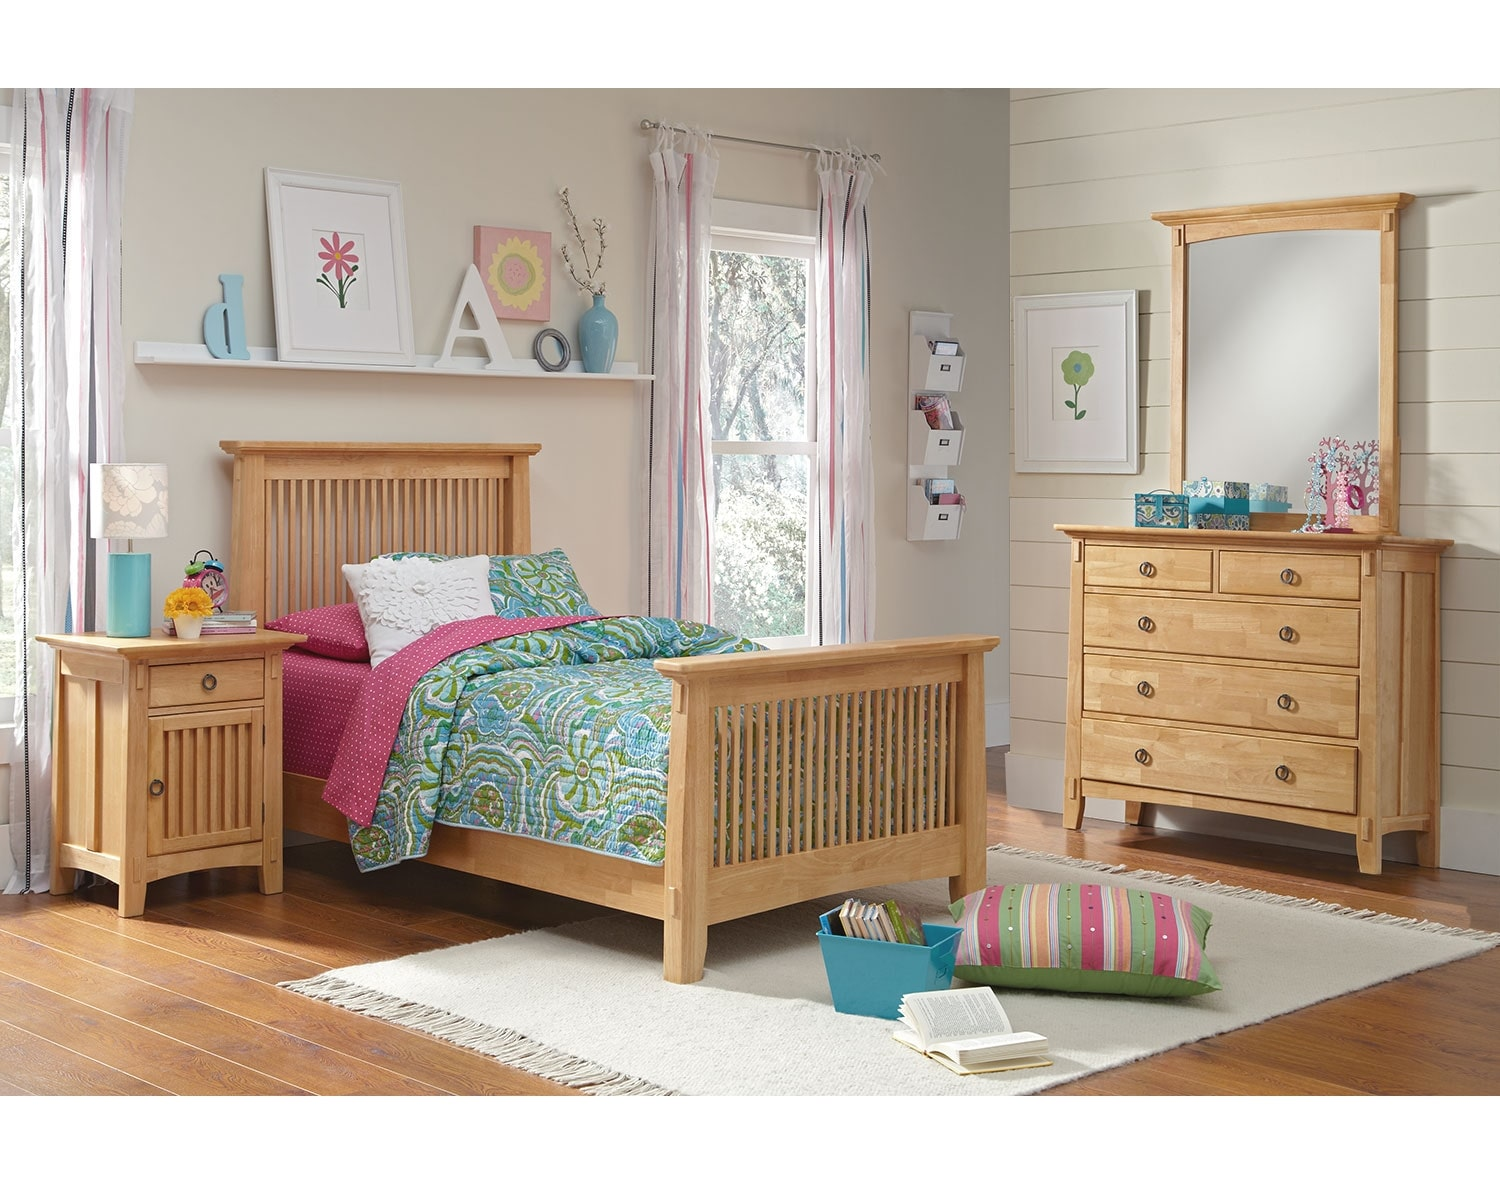 Kids Furniture - The Wentworth II Light Collection - Nightstand